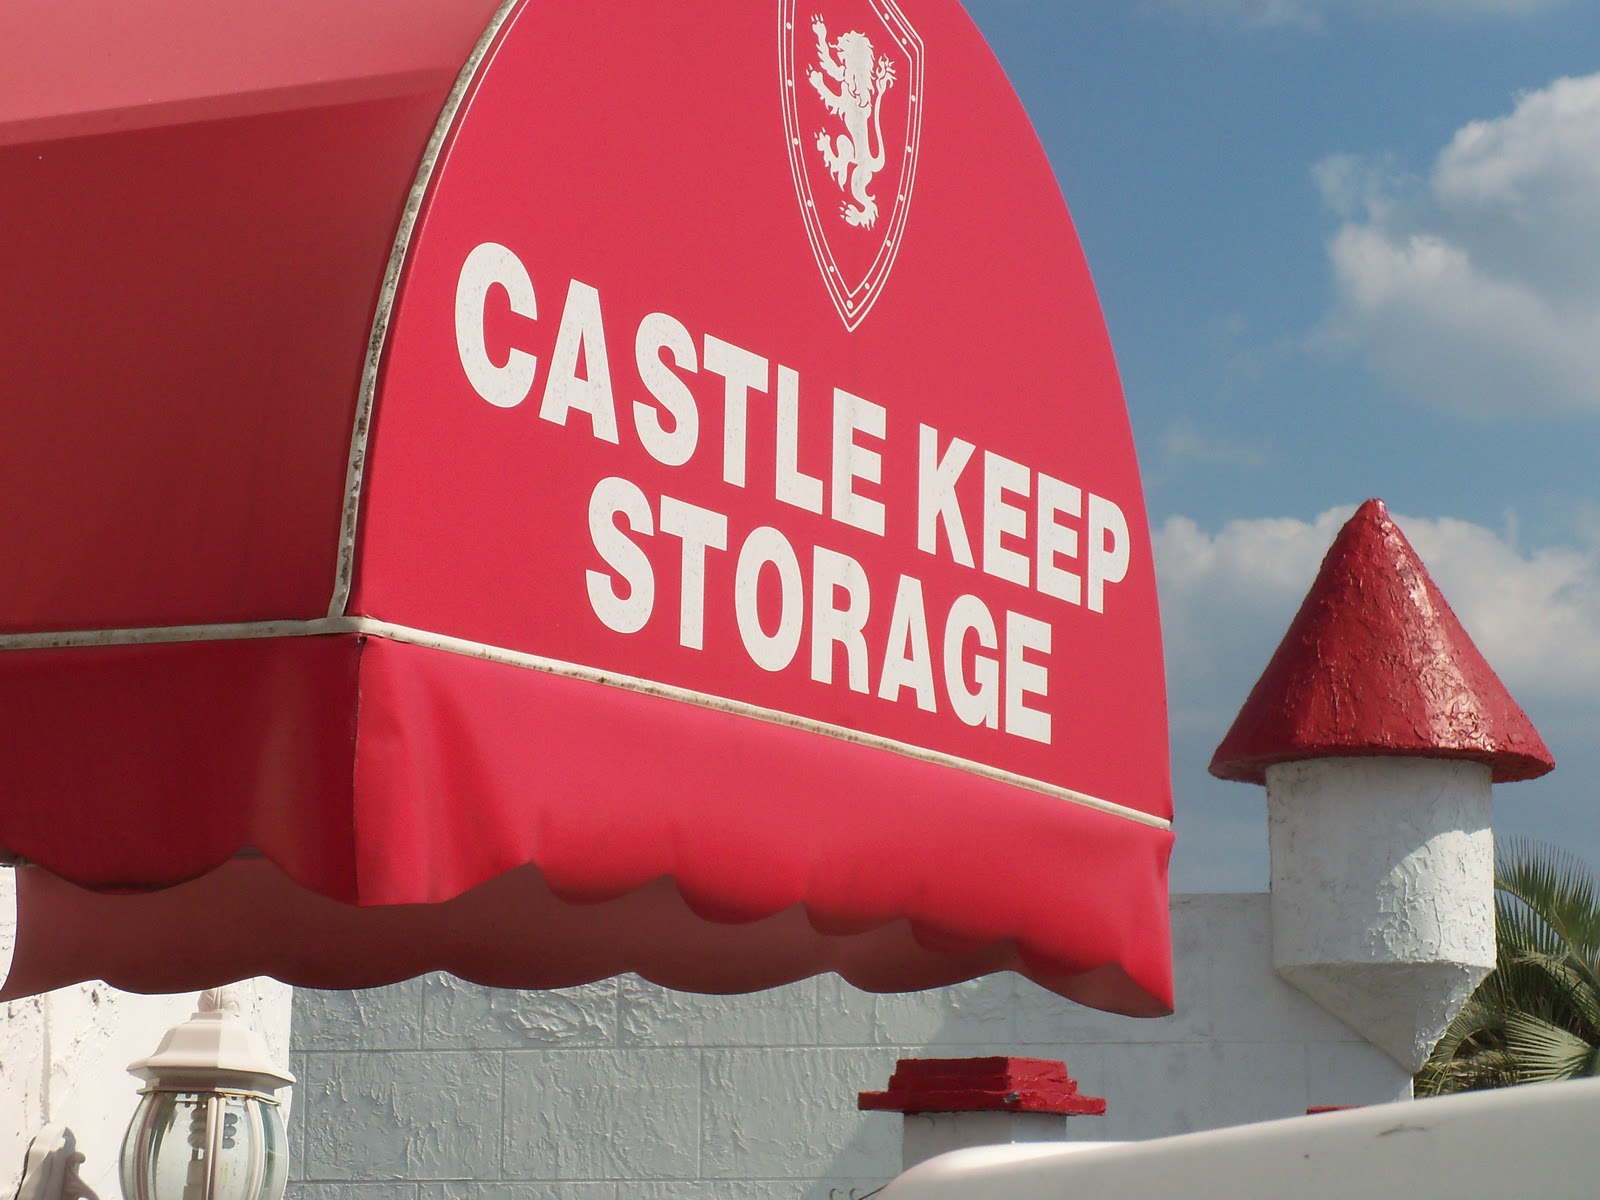 Castle Keep Storage in Hudson, FL